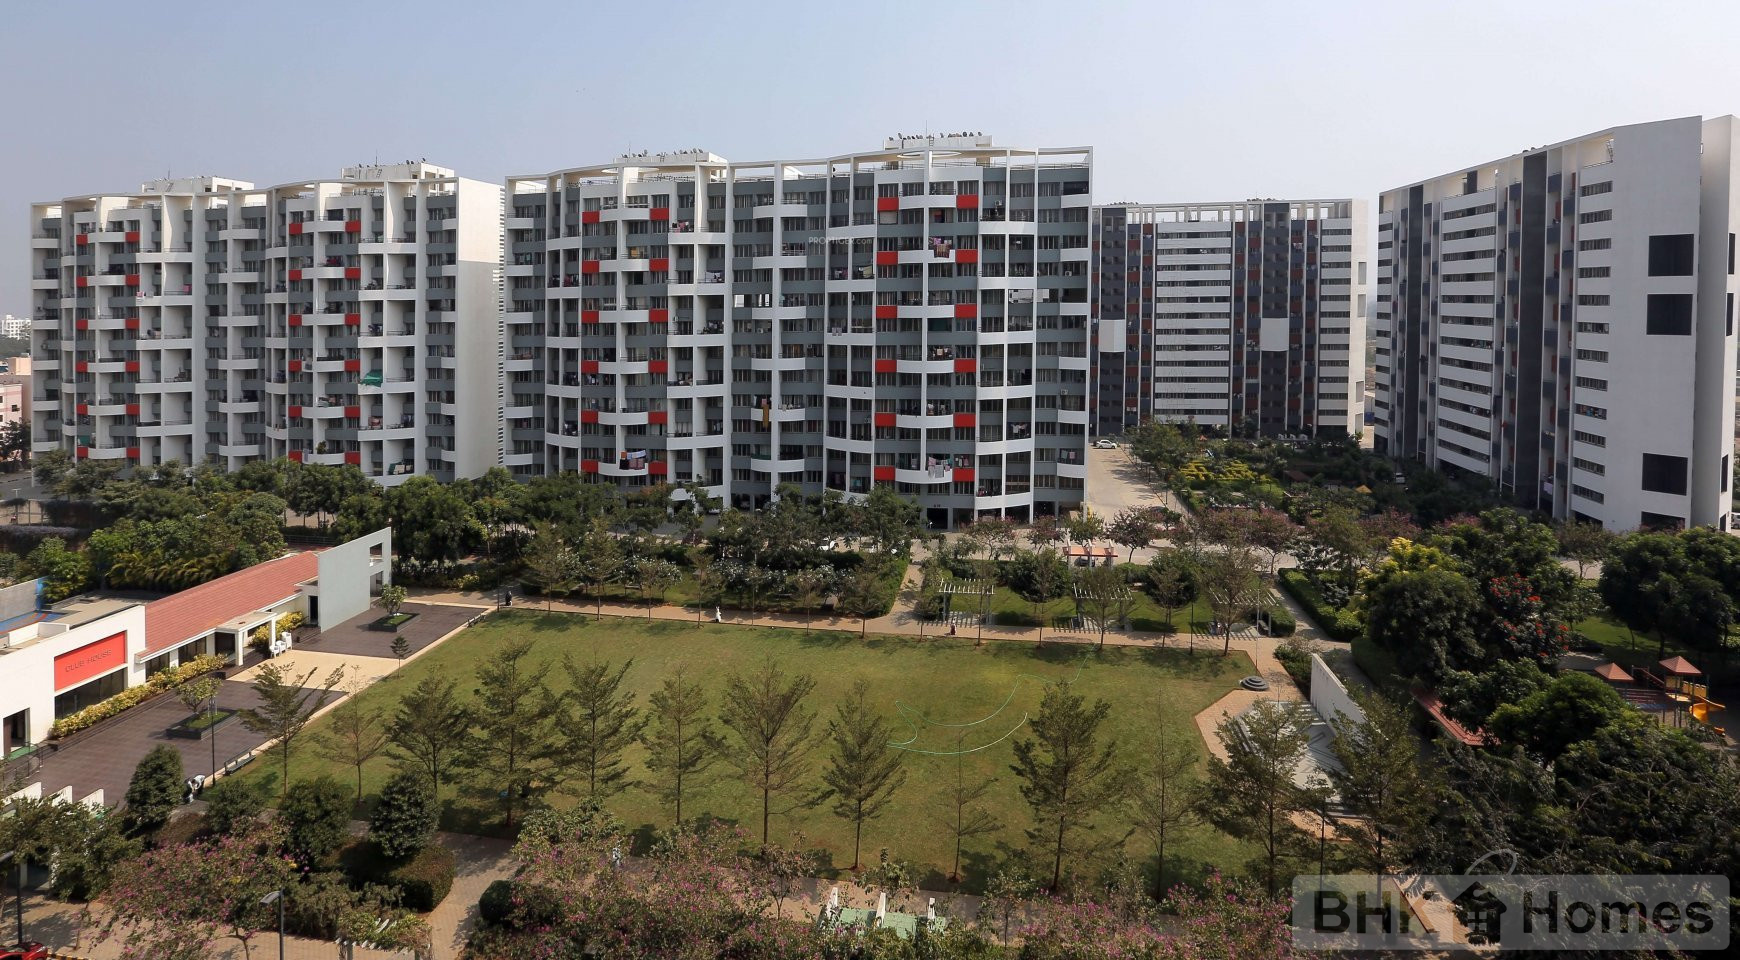 2  BHK flat for sale in Kumar Park Infinia Phase II